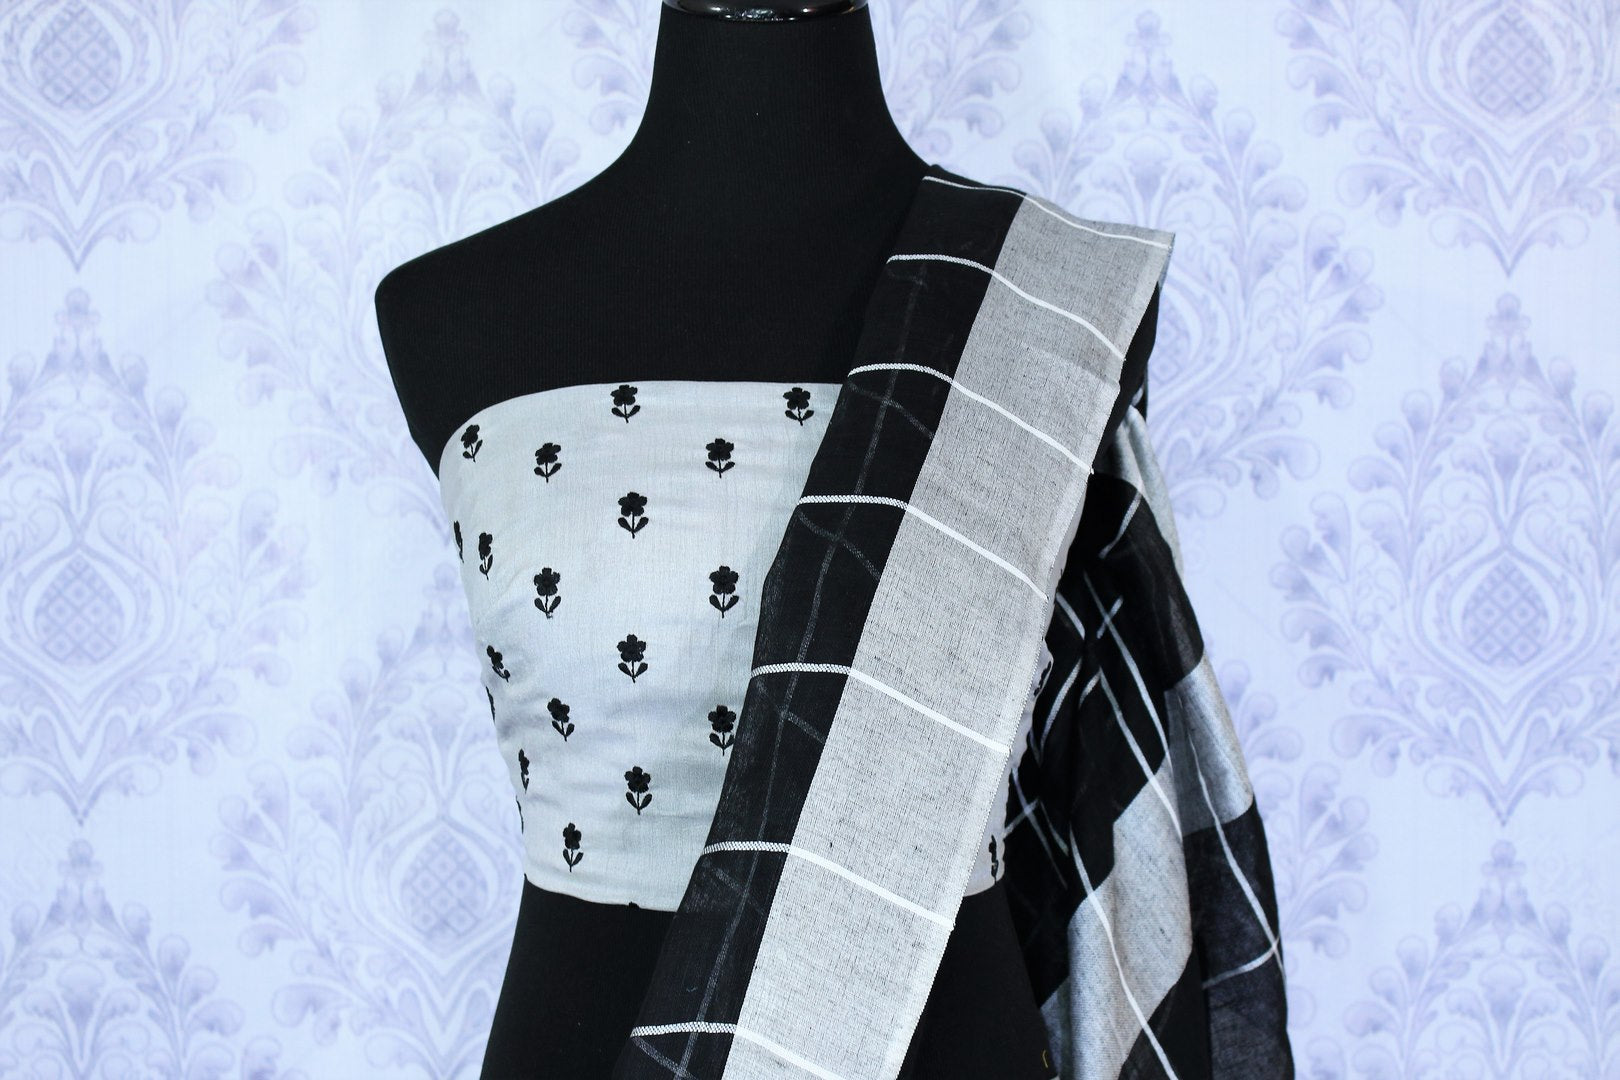 Handwoven black check linen sari buy online in USA. Make your Indian look special with beautiful Indian handloom sarees, linen saris available at Pure Elegance Indian clothing store in USA or shop online.-blouse pallu